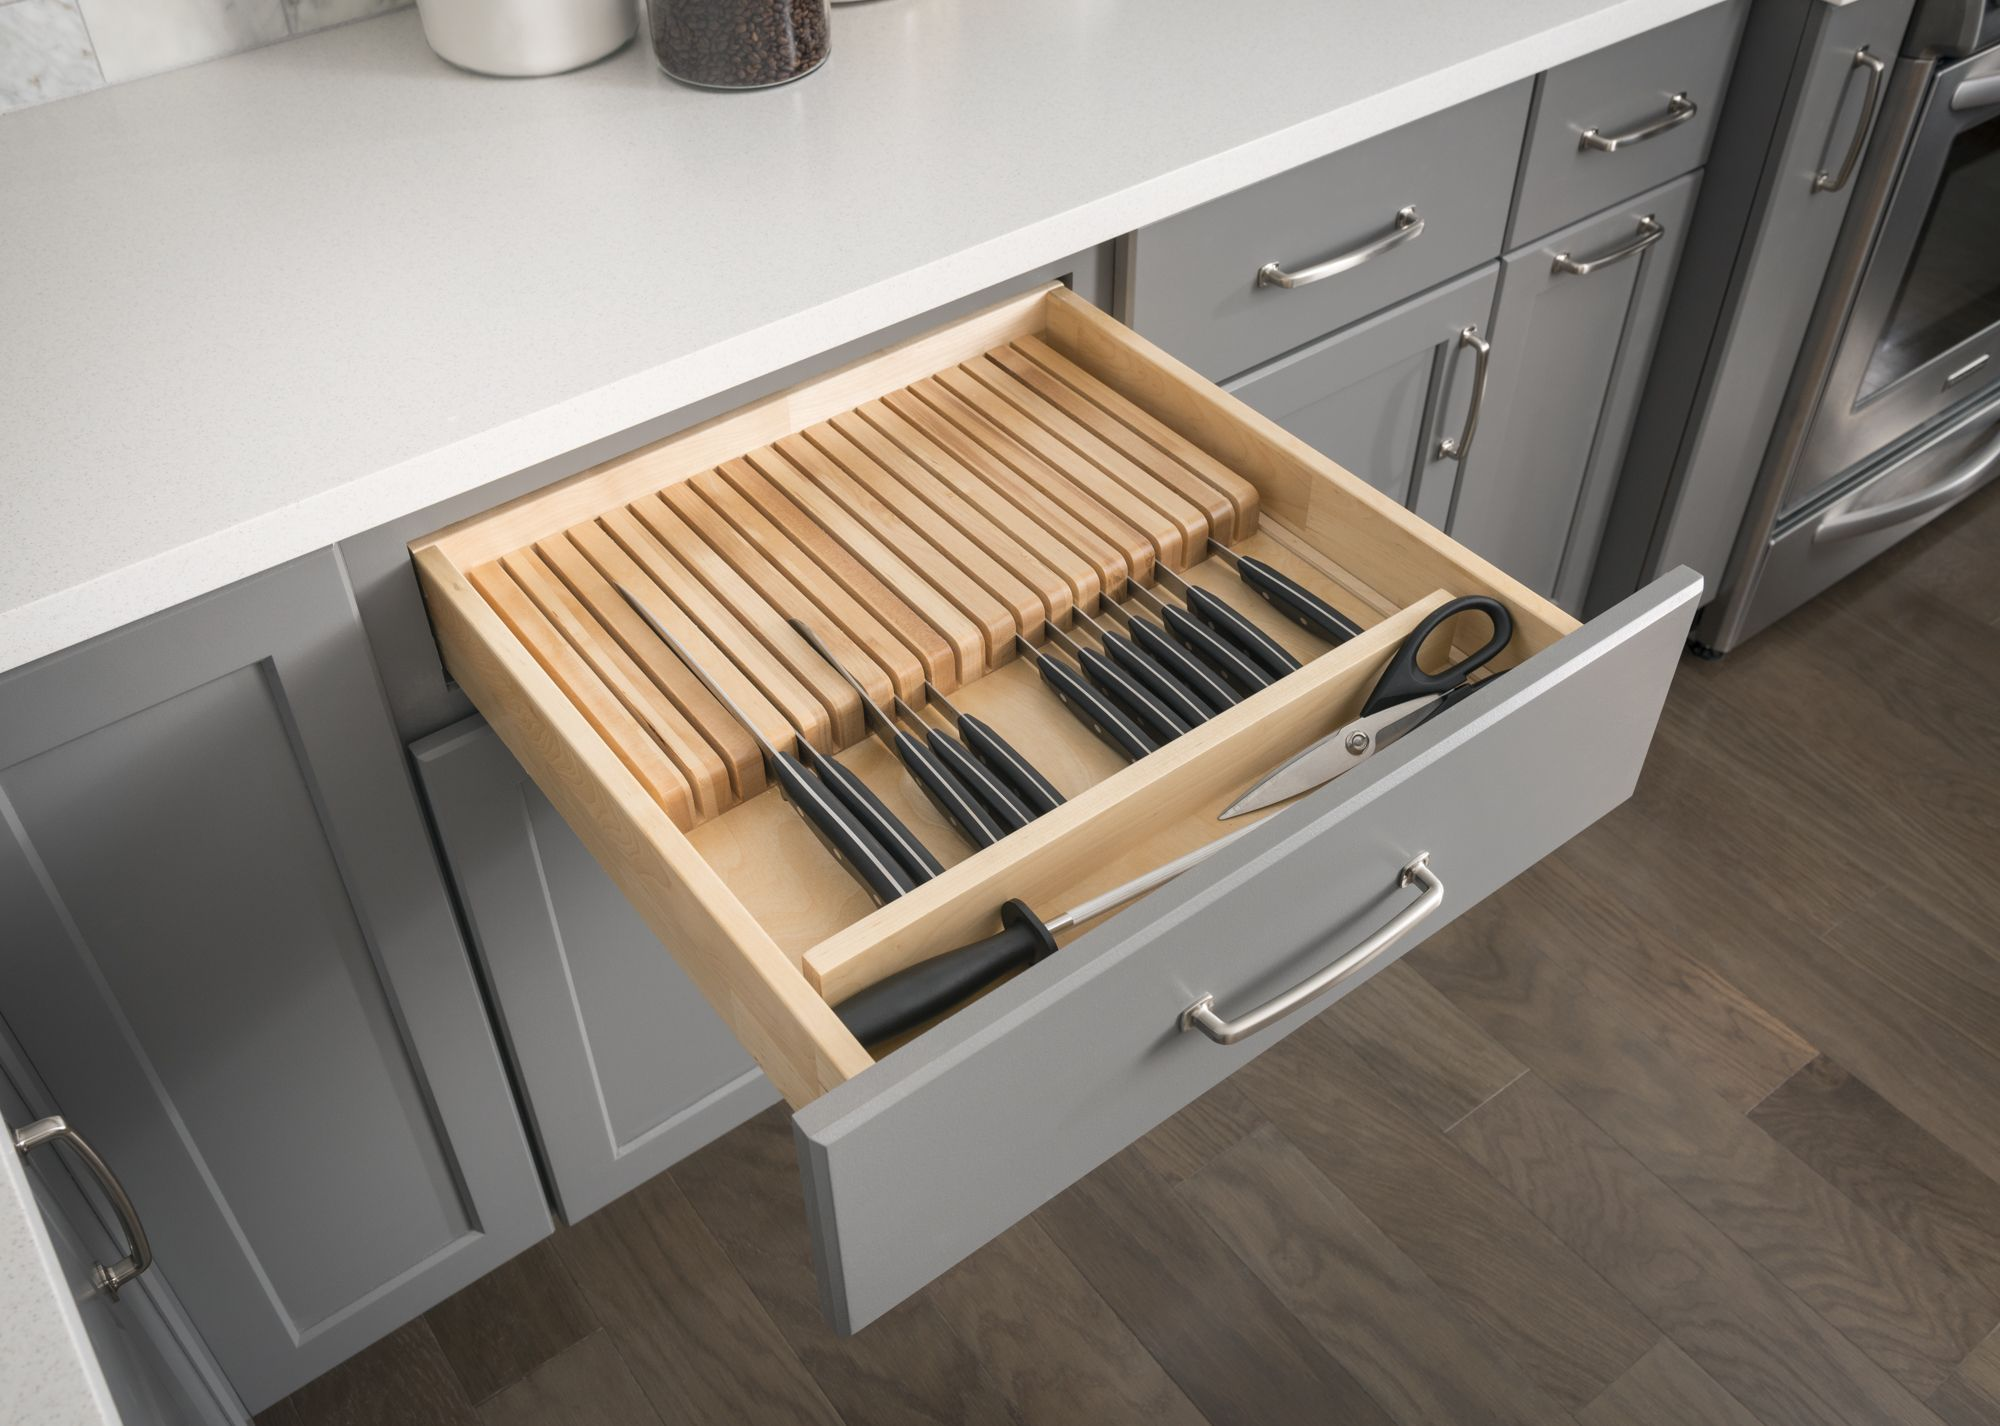 """Knife Organizer Drawer Insert 18 1 2"""" x 22"""" x 2 3 8"""" For use in 18"""